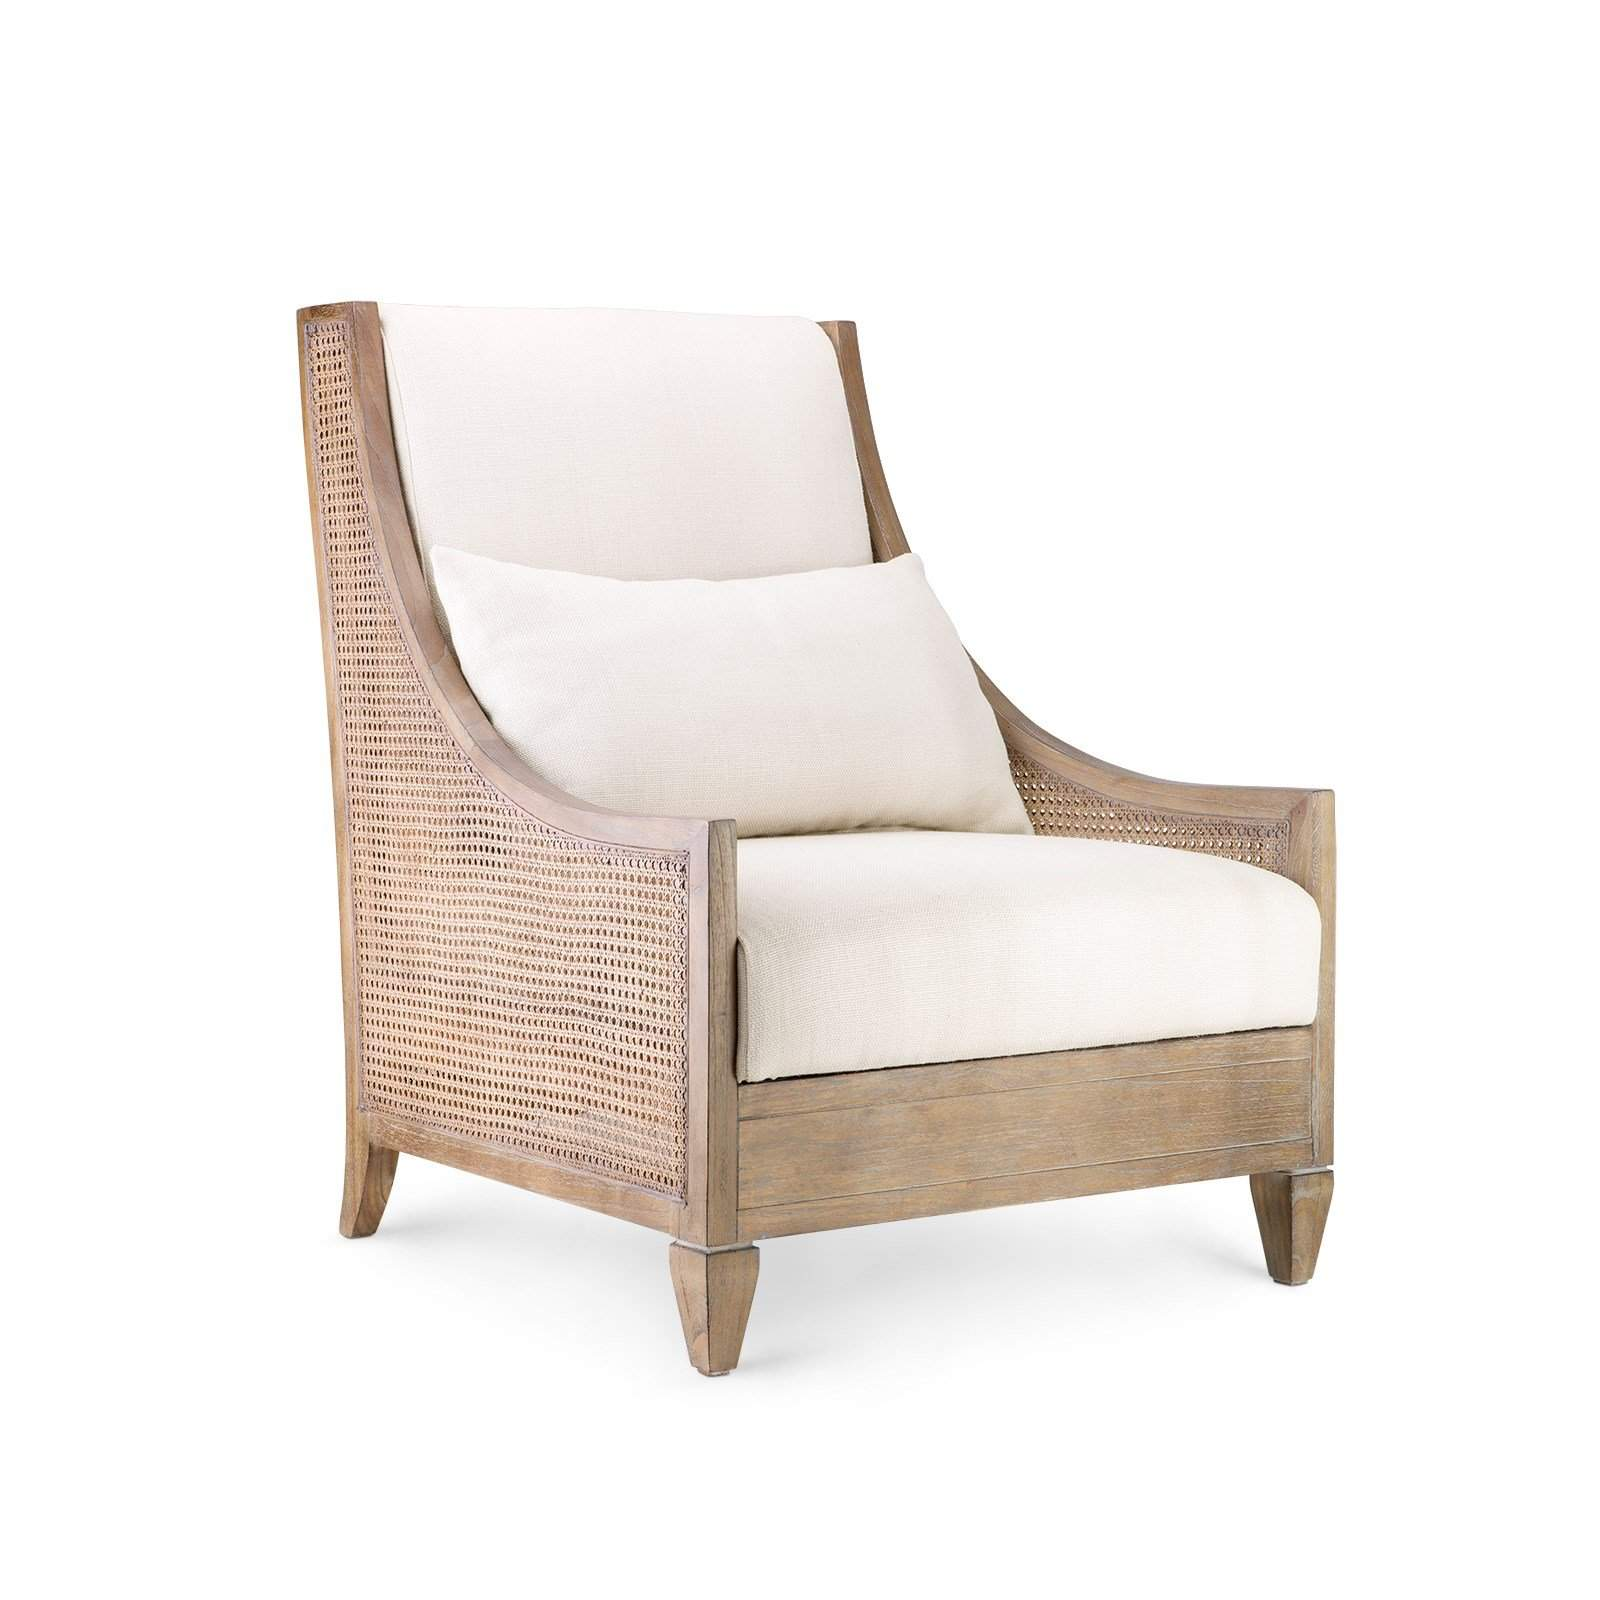 Bungalow 5 - RALEIGH CLUB CHAIR in DRIFTWOOD